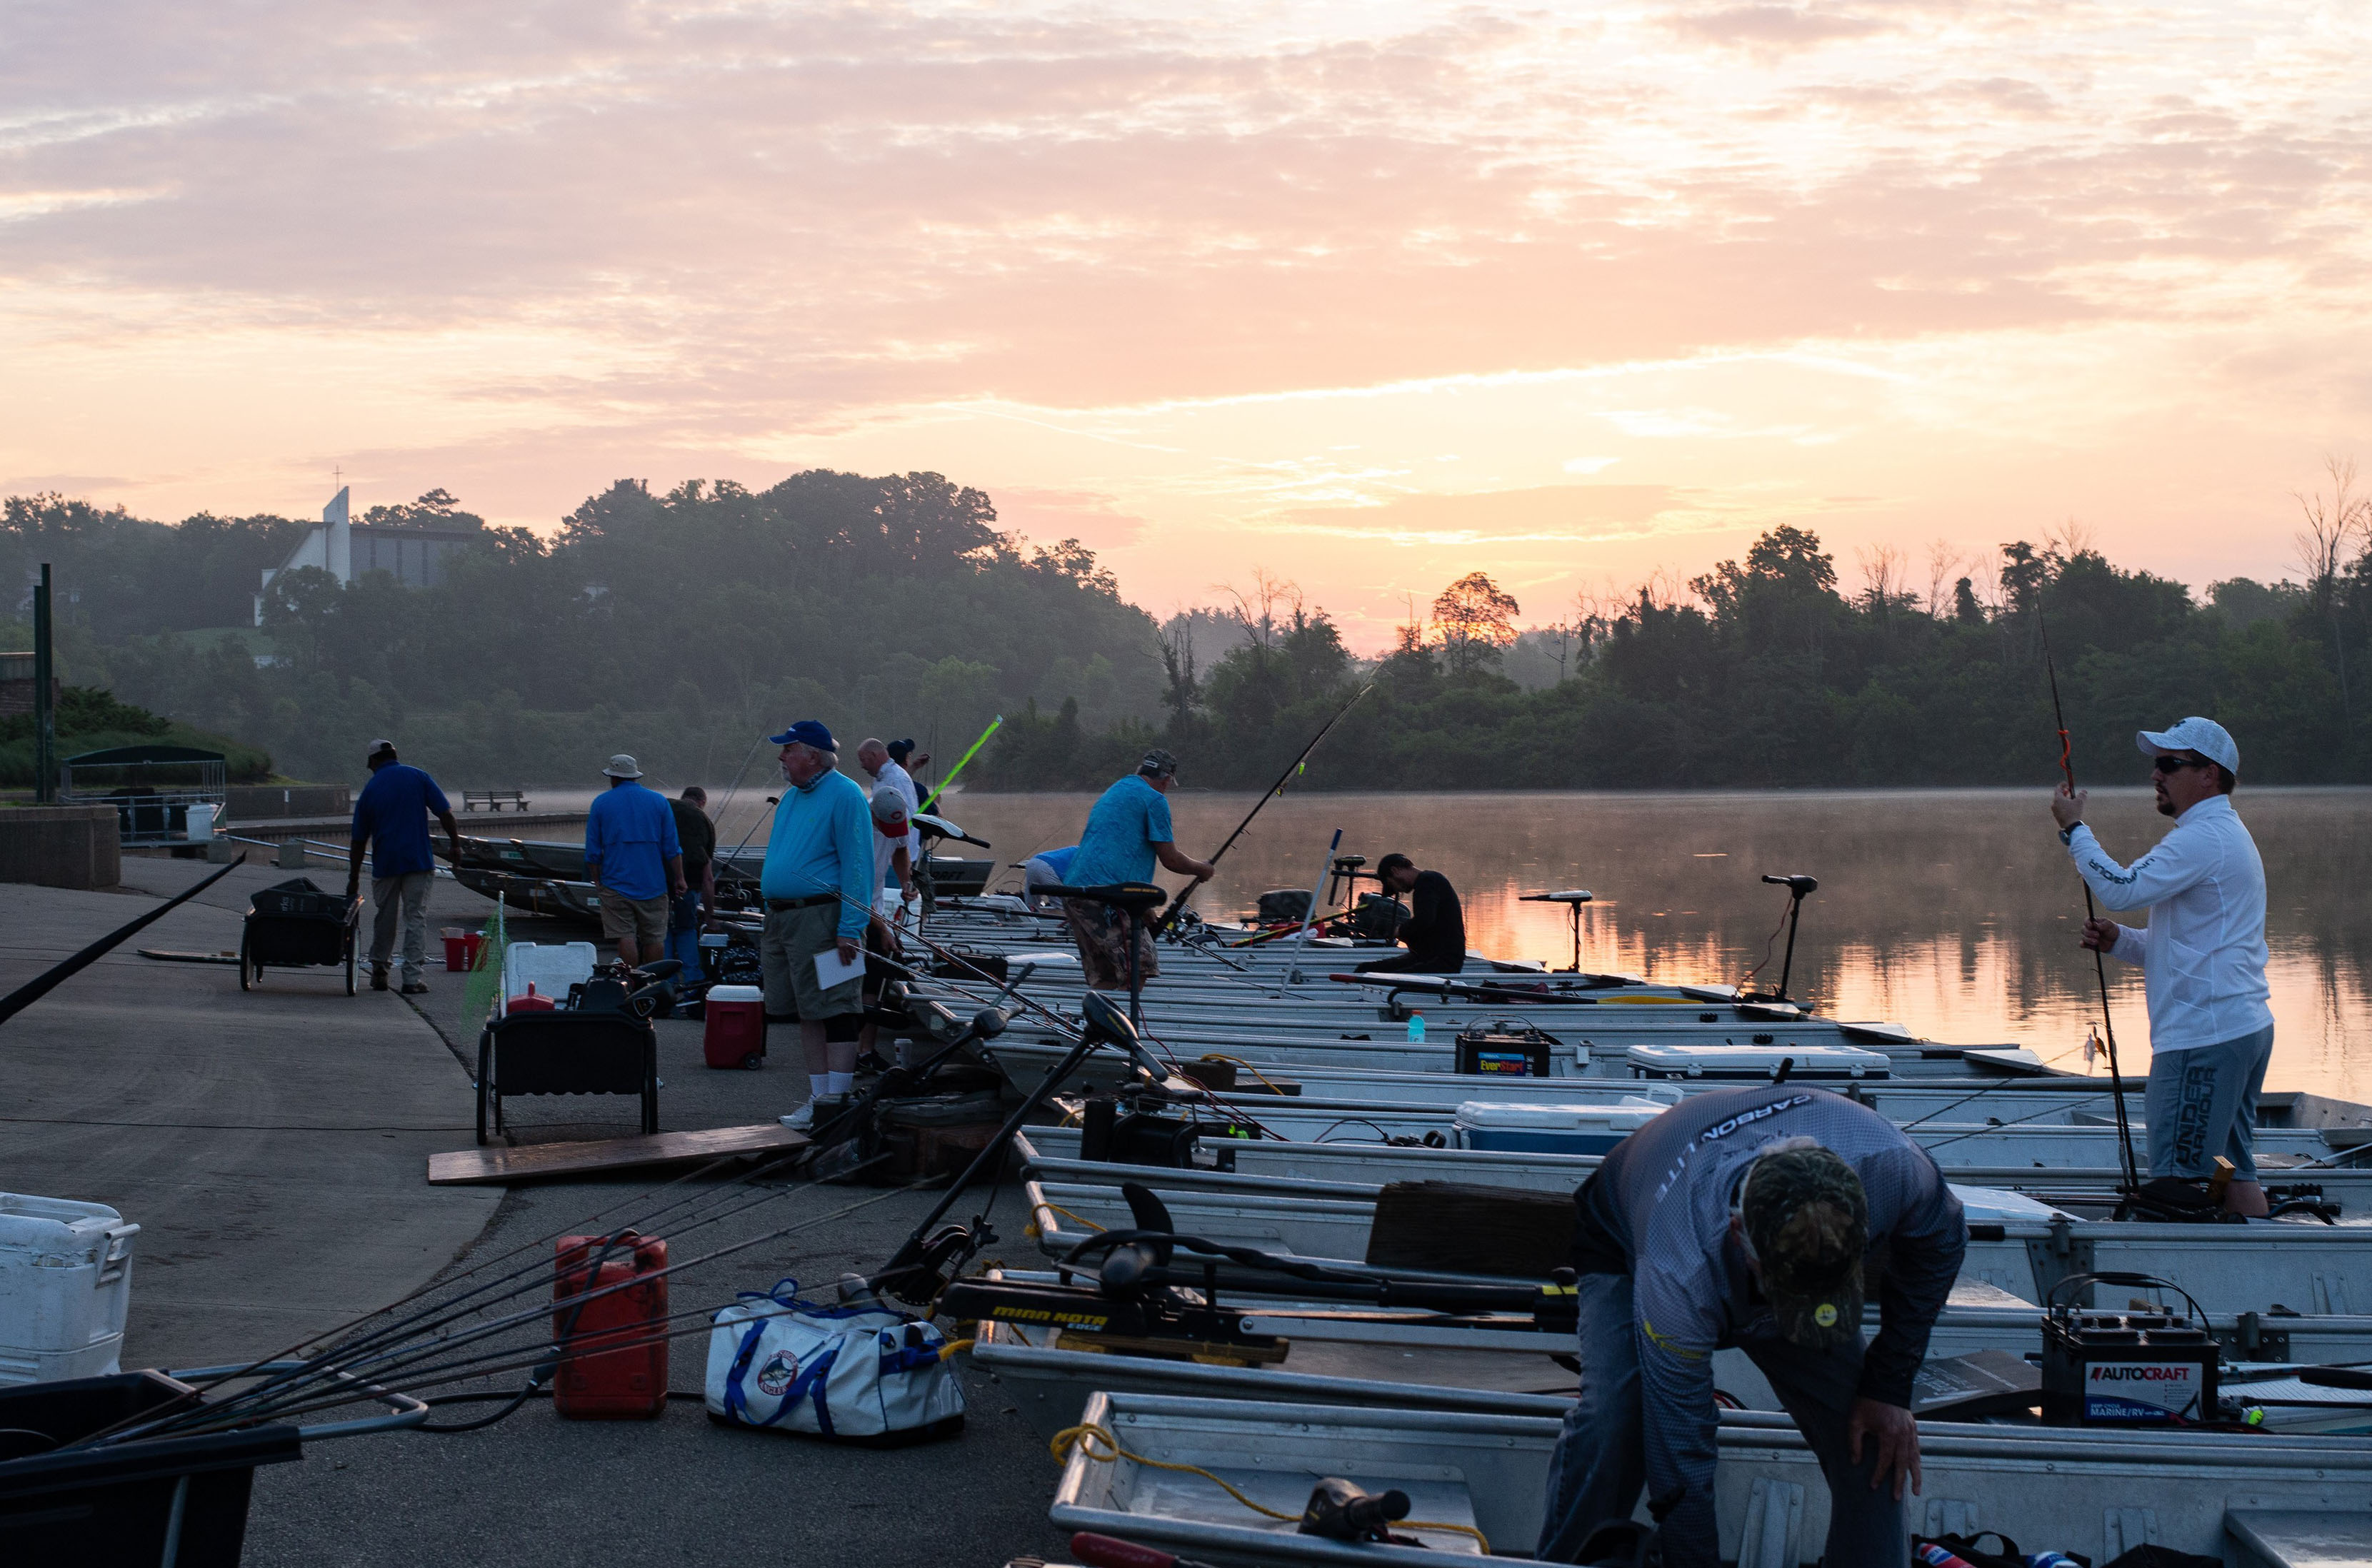 July 14 Bass Series Anglers at Sunrise